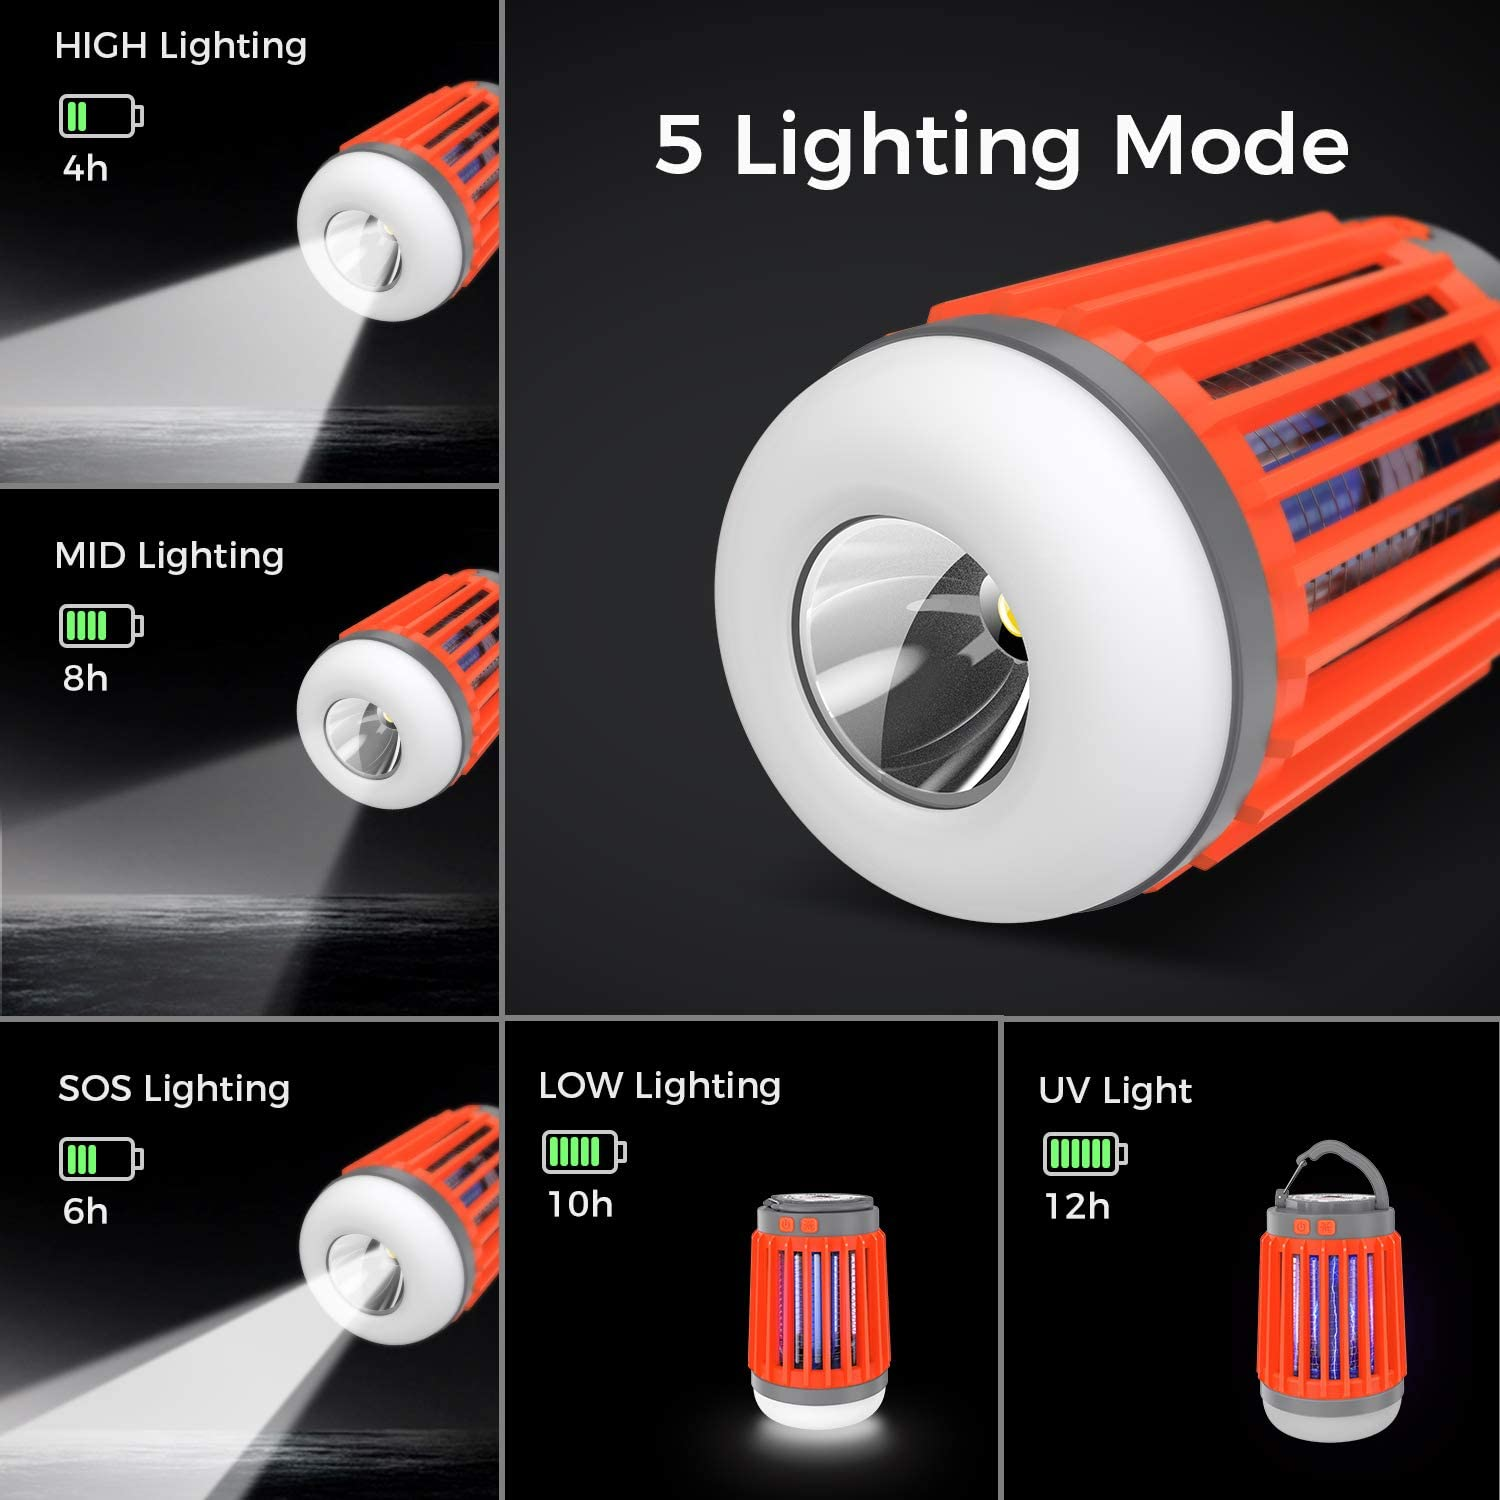 IP67 Waterproof Camping Mosquito Repellent with USB Cable Aerb 3-in-1 Mosquito Lamp with UV LED 5 Light Modes Portable Outdoor Electric Mosquito Net Lantern Hook Brush